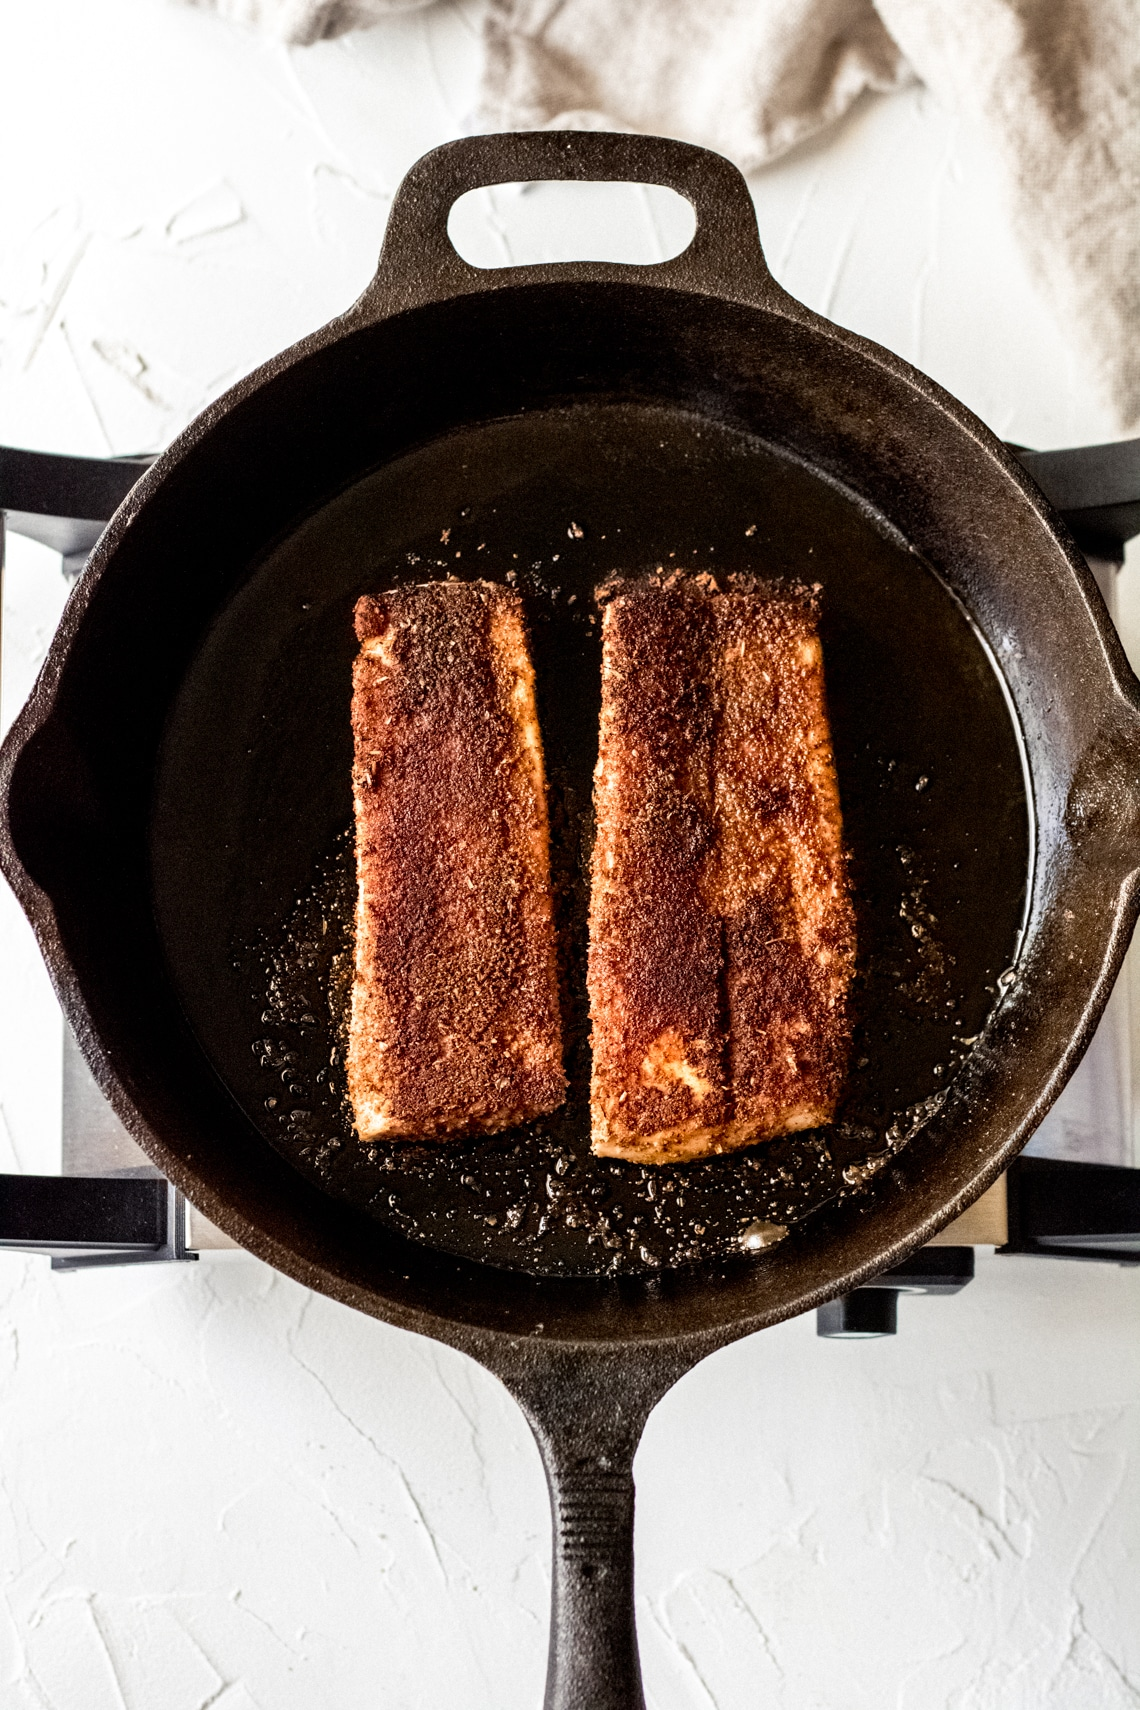 two Mahi mahi fillets cooking in a cast iron skillet